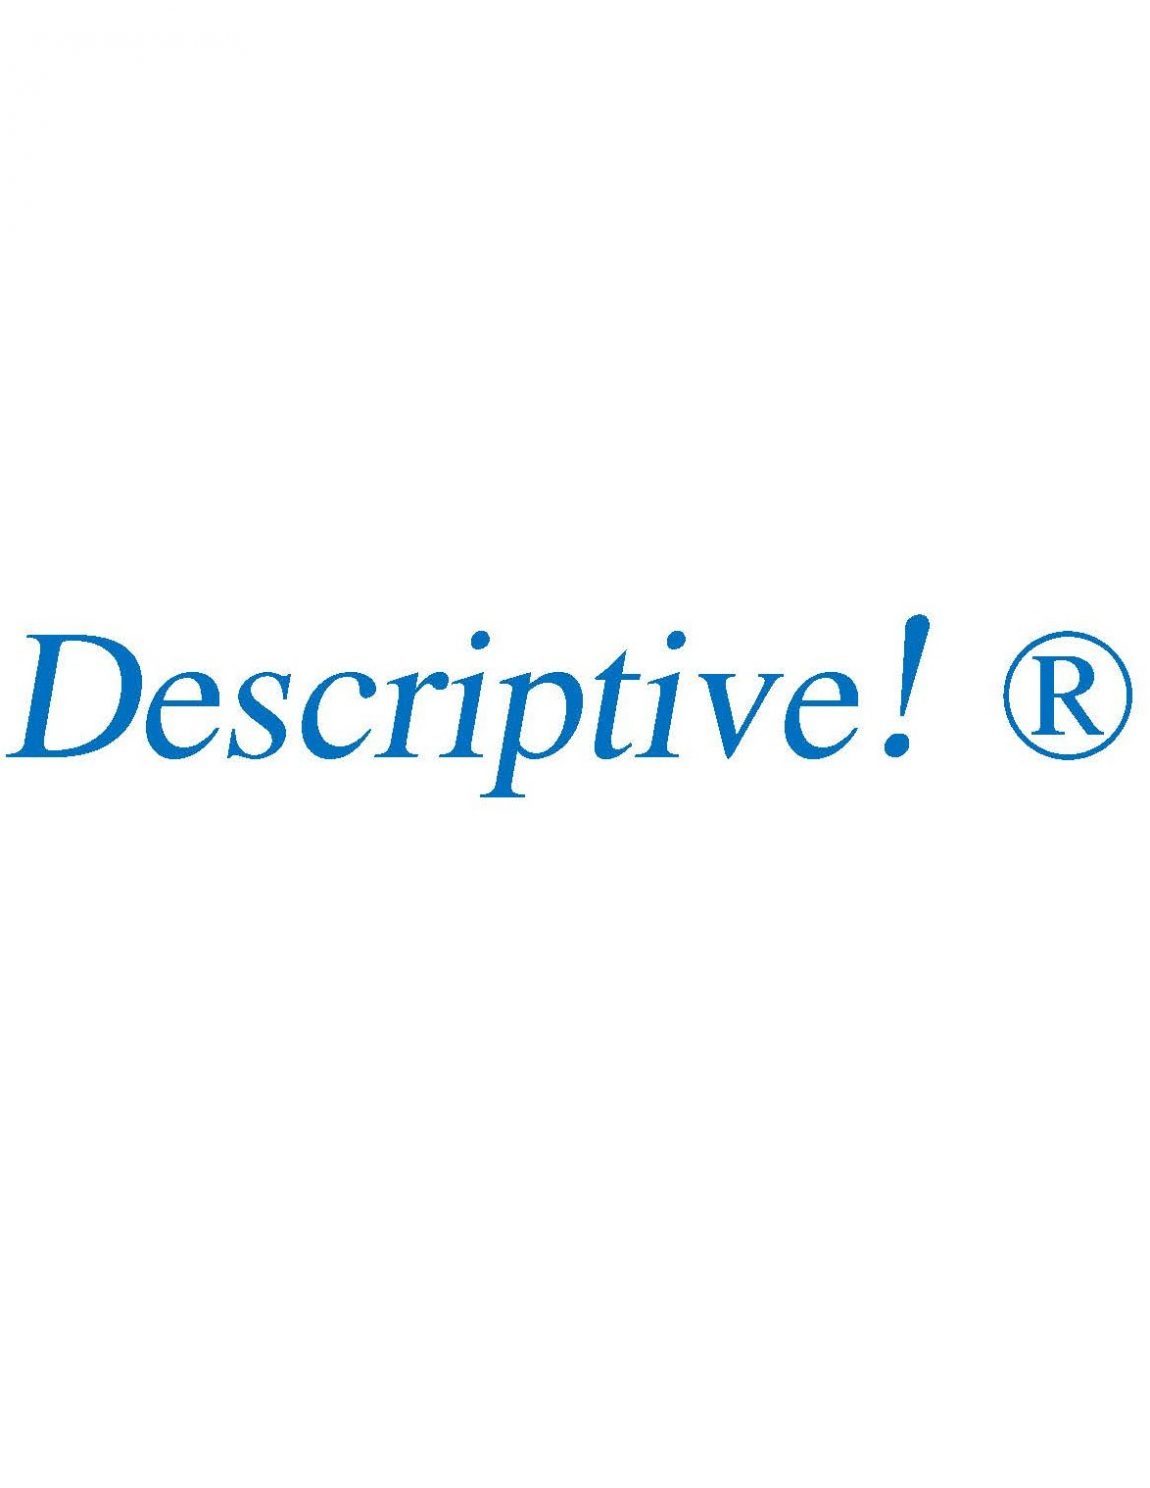 A Concise Guide to the Lowly Descriptive Trademark